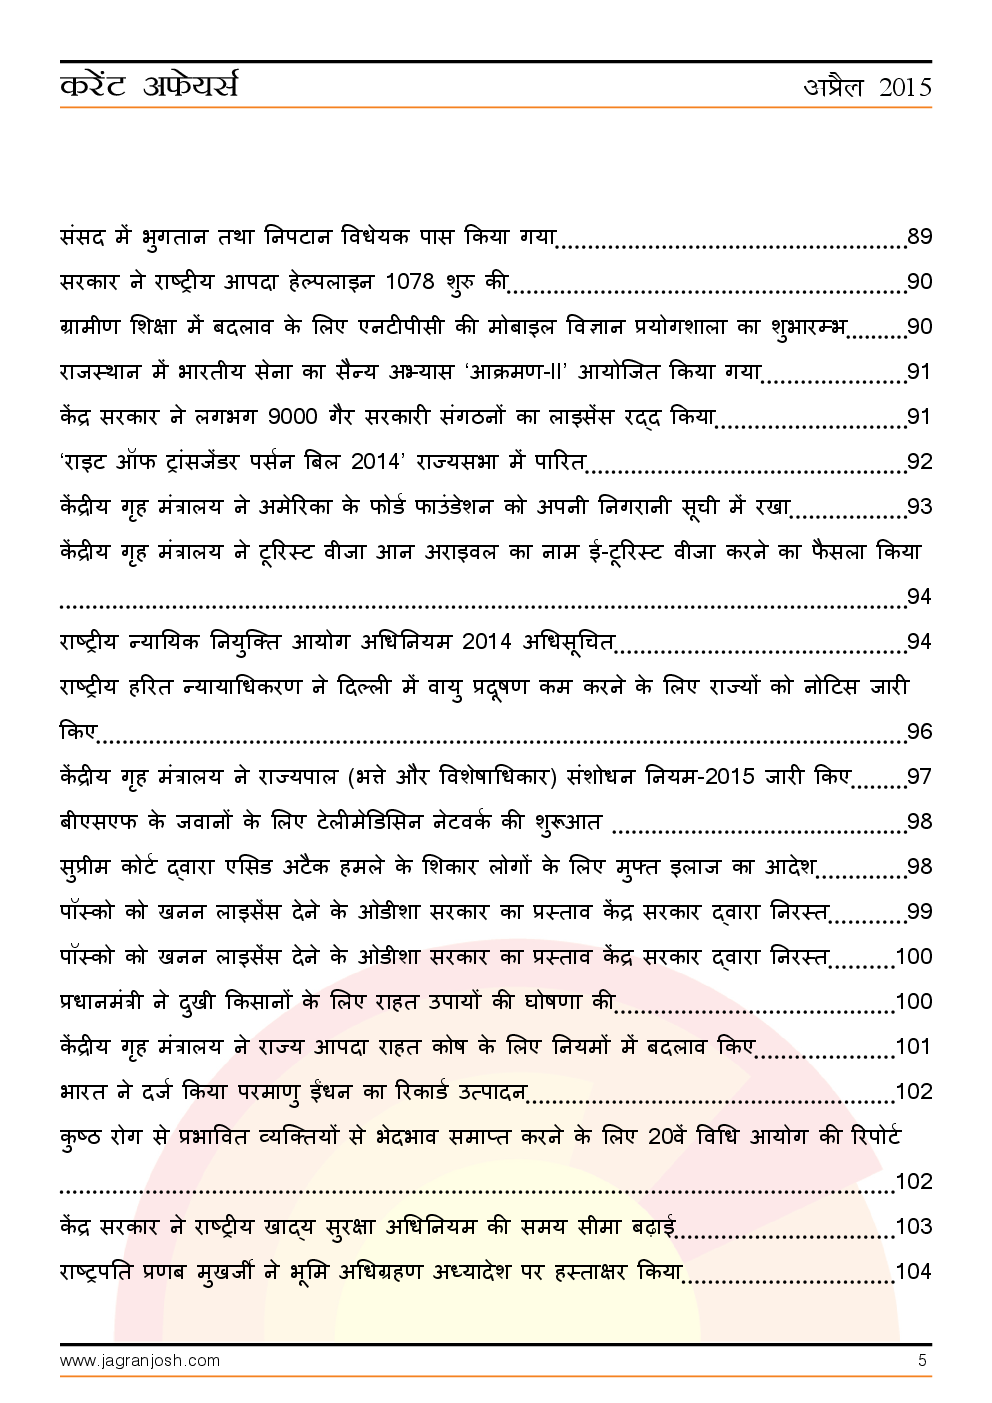 Current Affairs April 2015 (Hindi) - Page 5